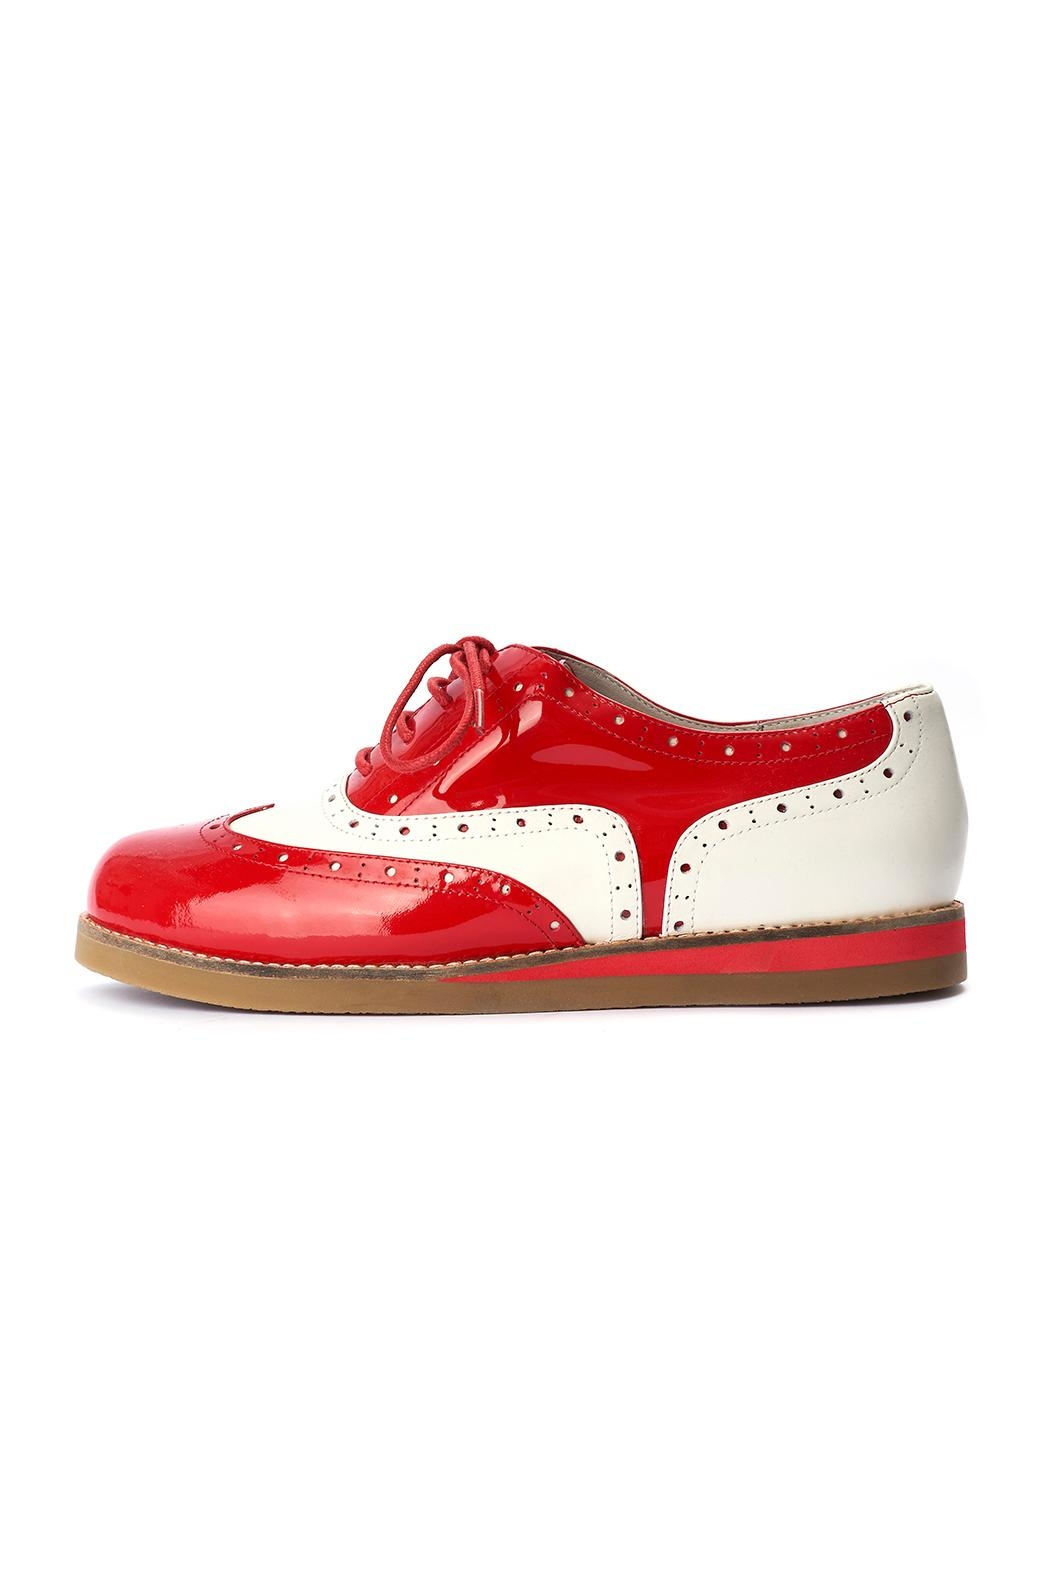 Lola Ramona Cecilia Wingtip Red Shoes - Front Full Image